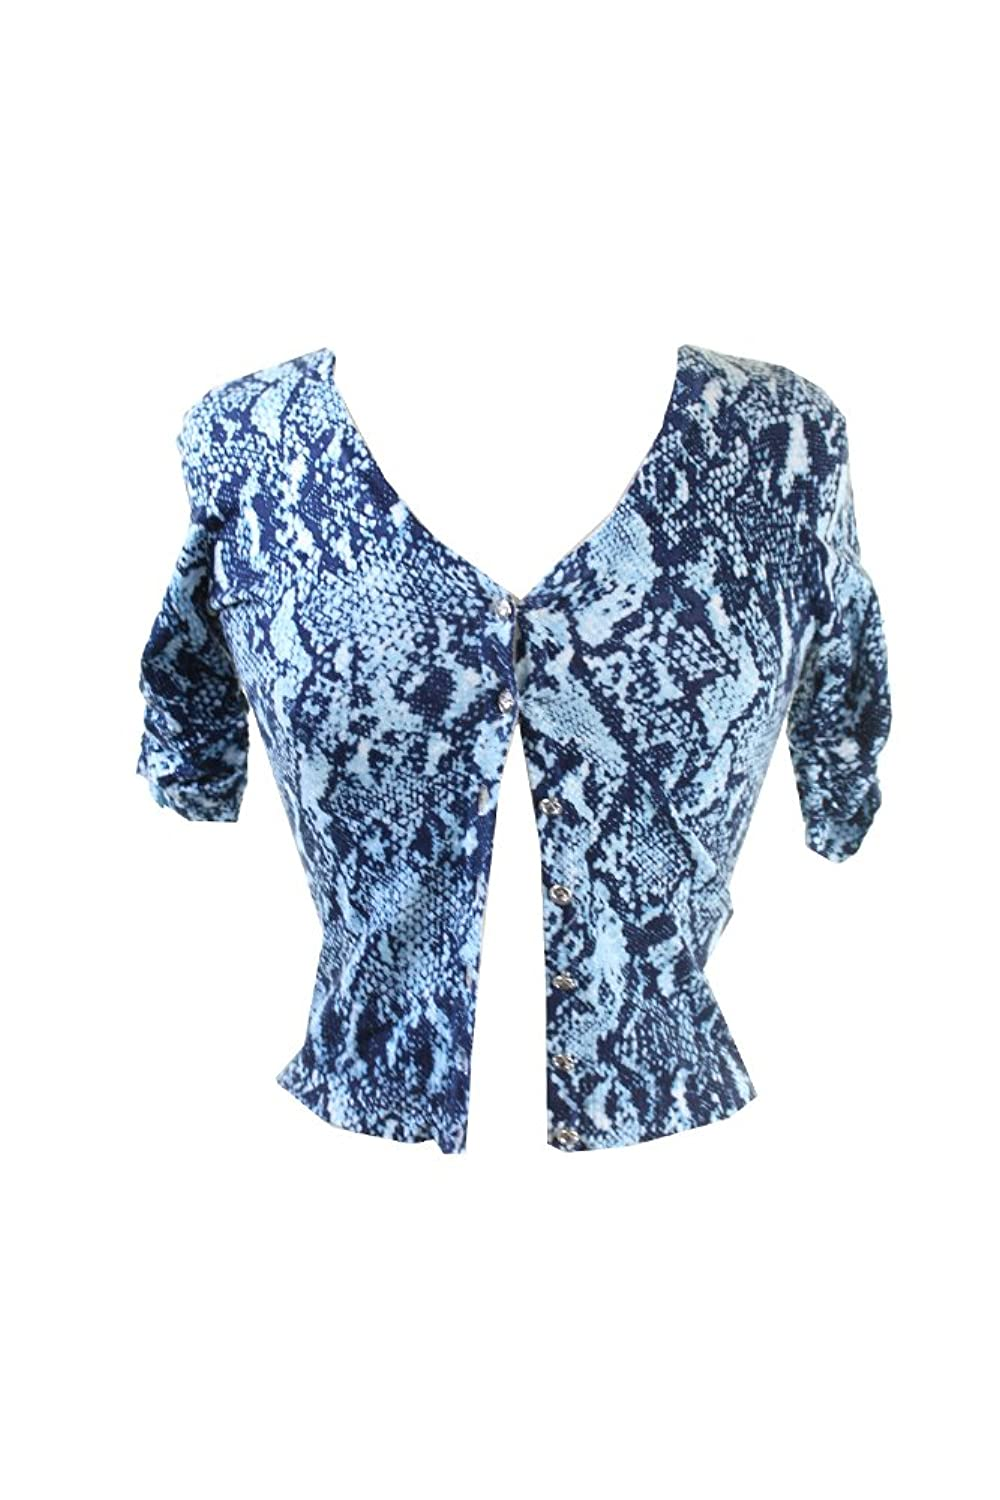 Inc International Concepts Petite Blue Snakeskin-Print Cropped Cardigan Petites